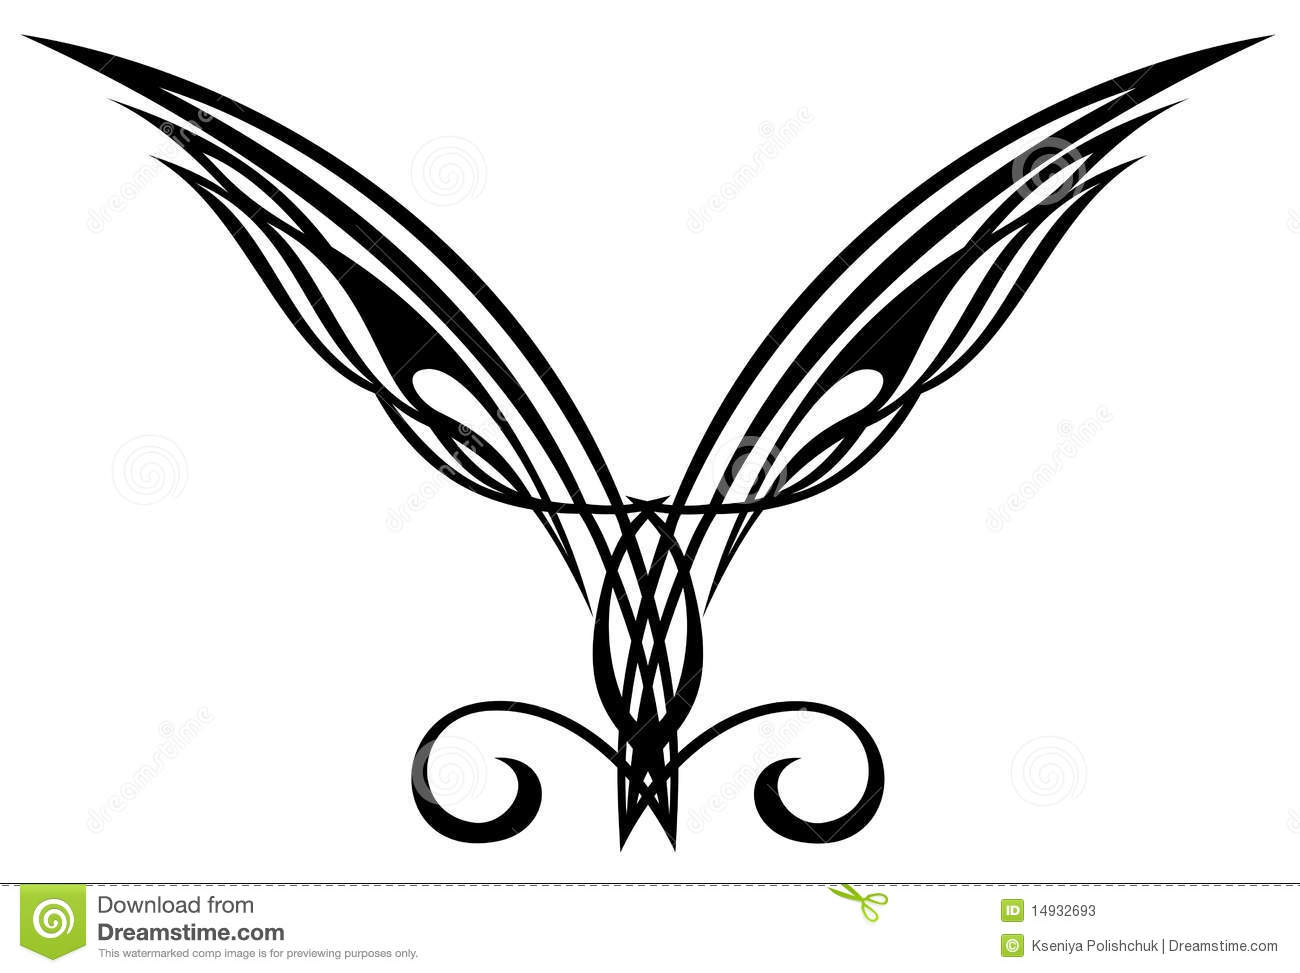 Elements De Conception De Tatouage Ailes Illustration De